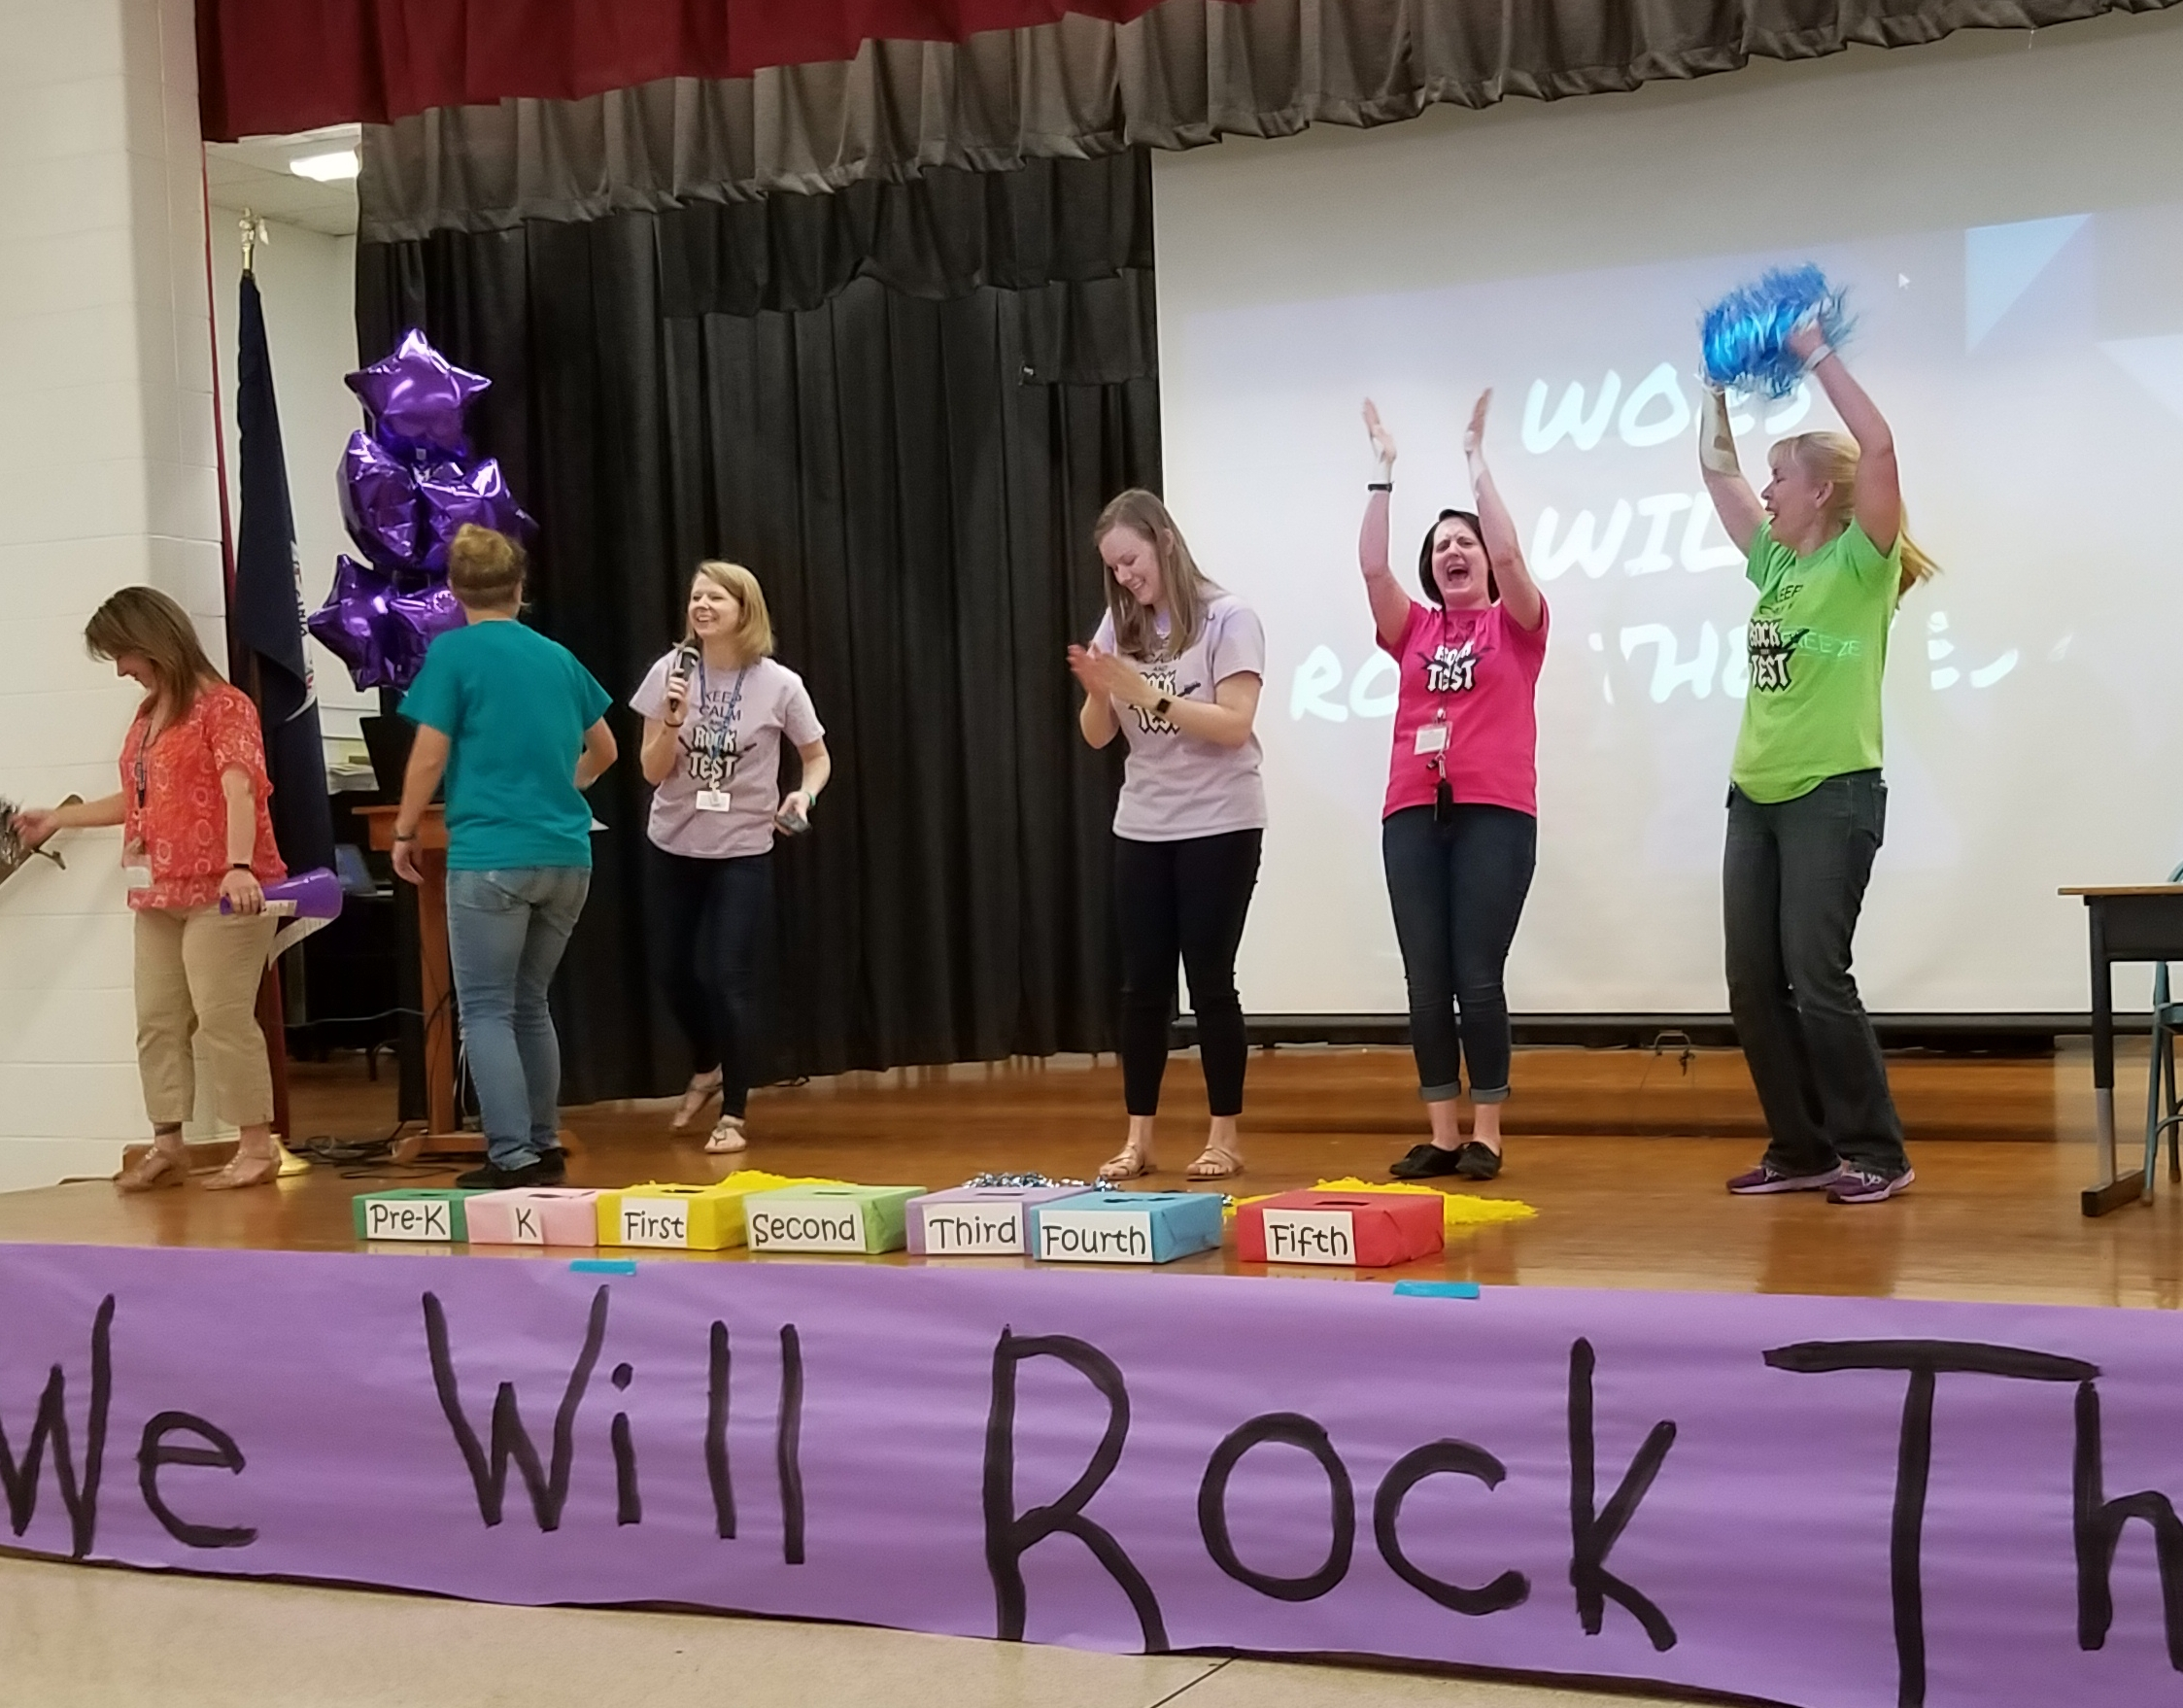 Music Rocker Sessel Test Staff Sol Videos Encourage Students To Rock The Test